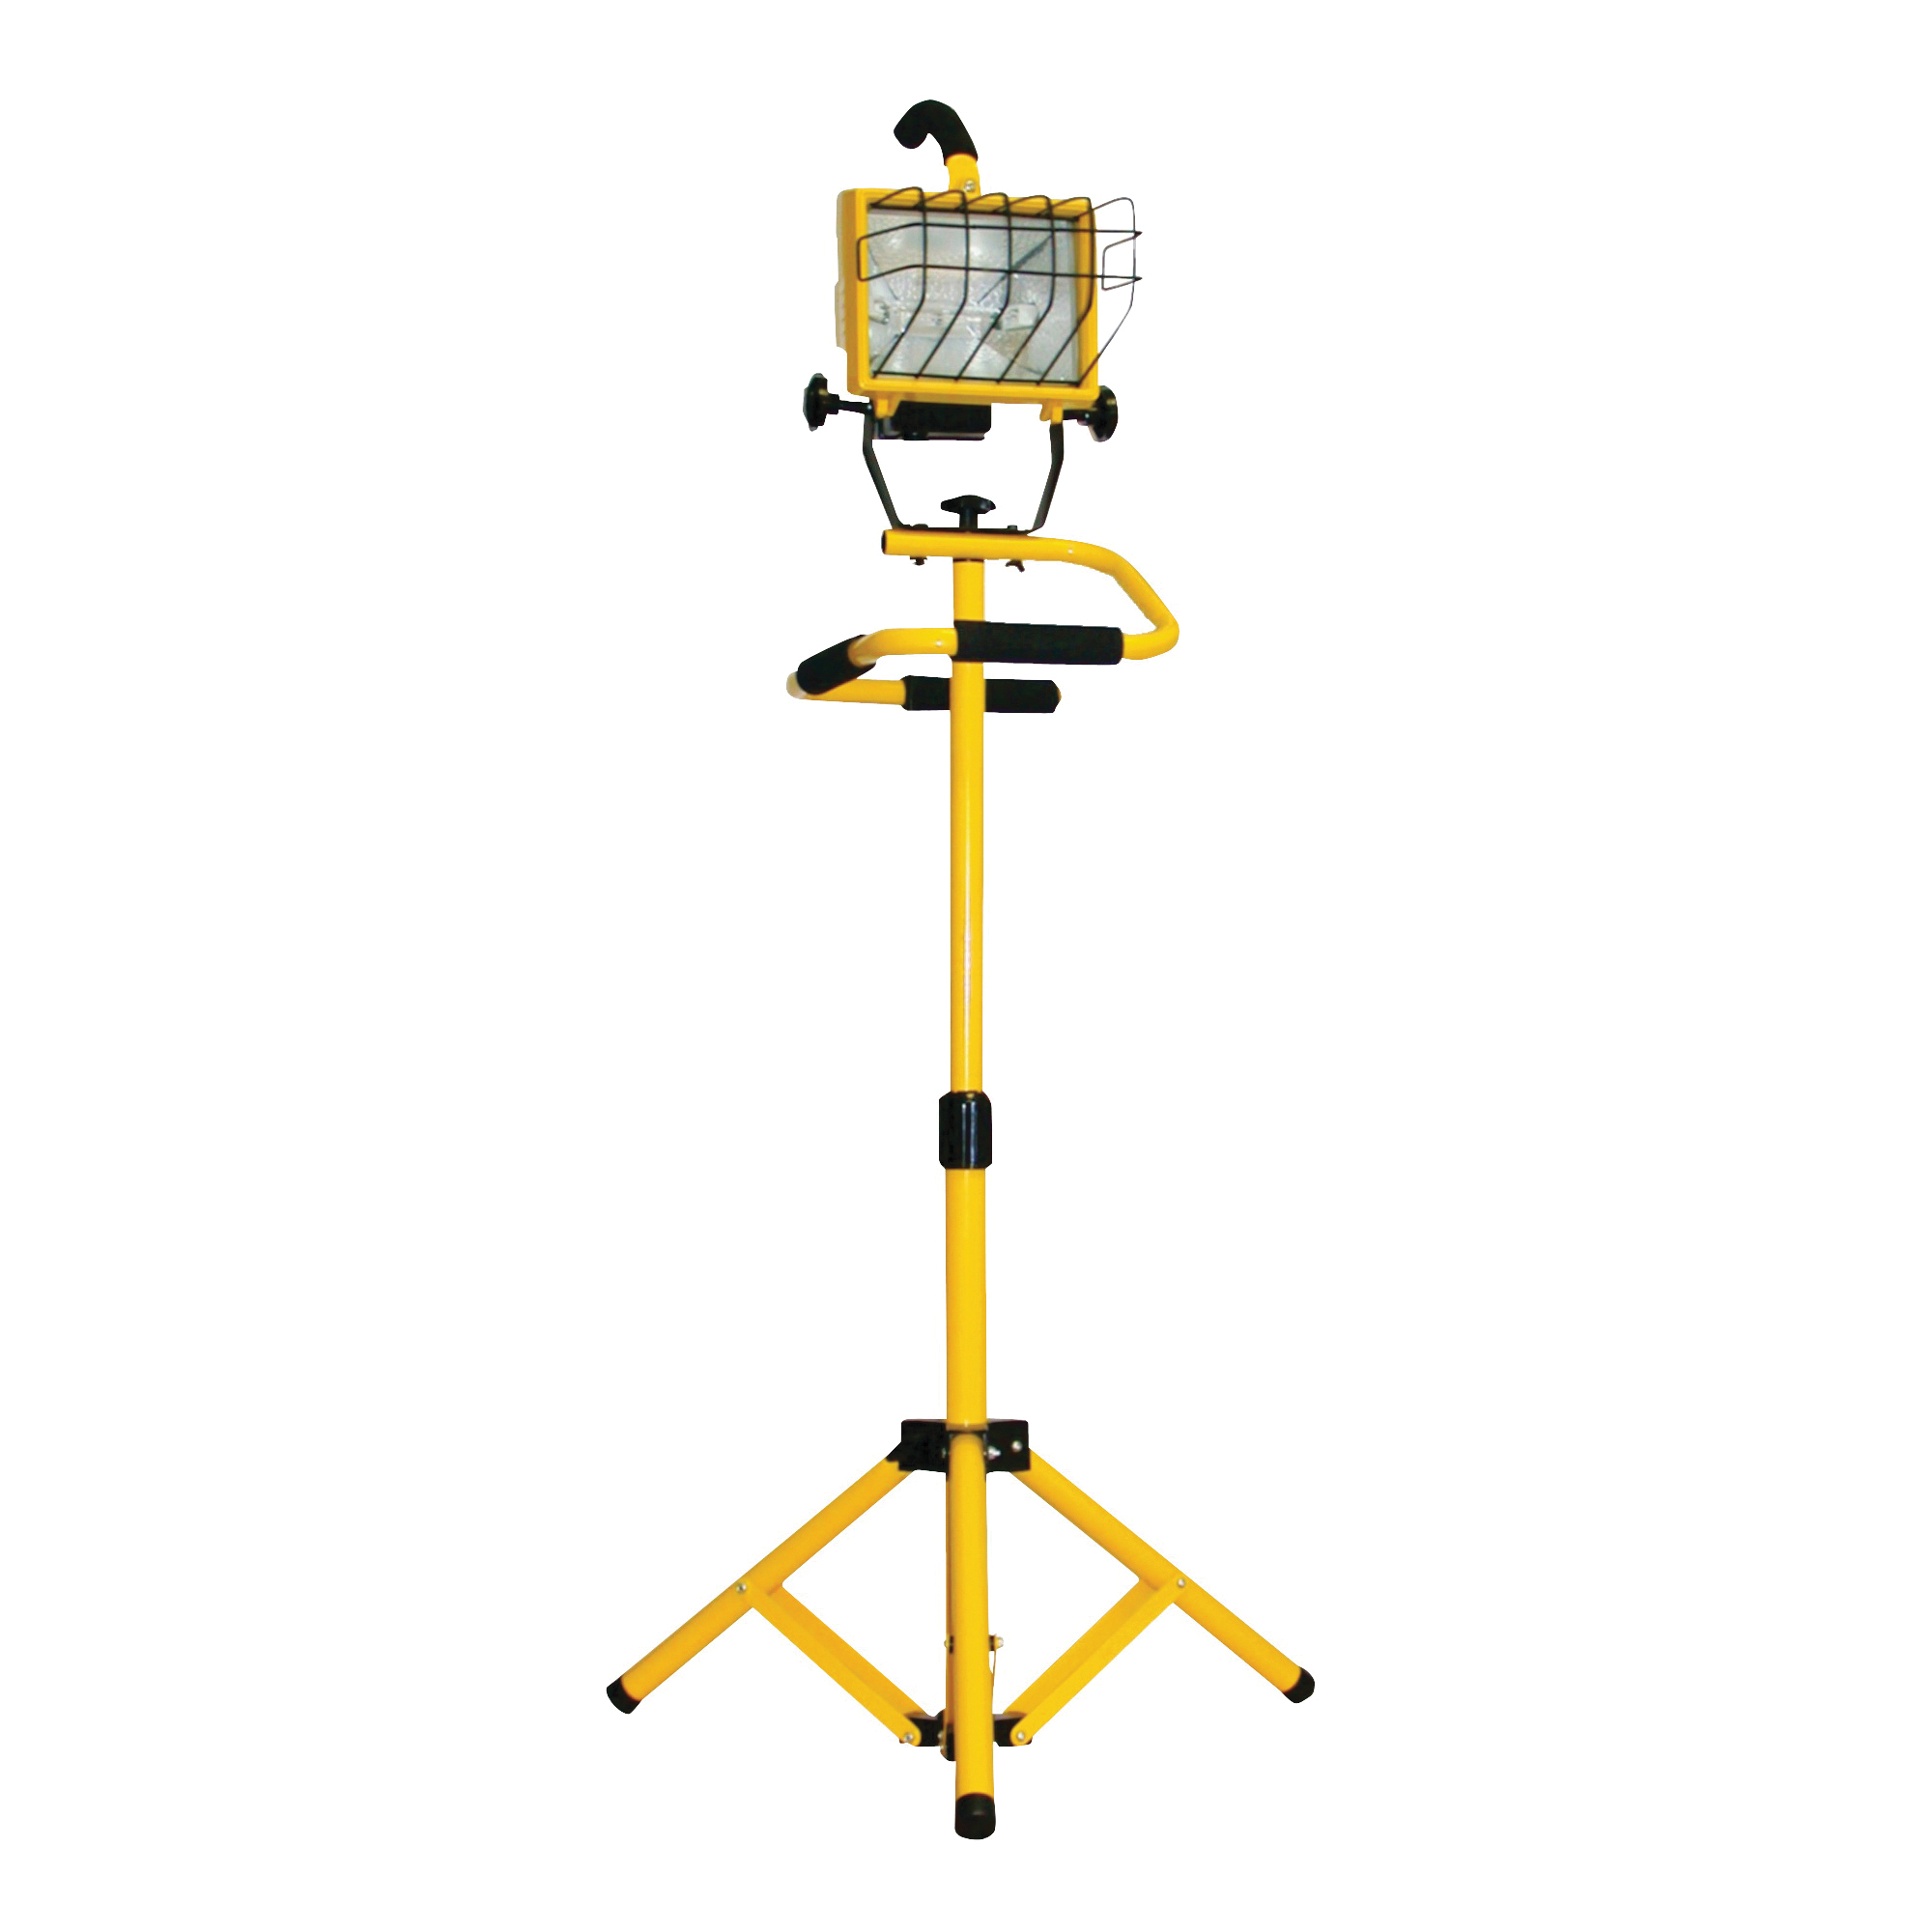 Picture of PowerZone ORHLT5006 Work Light, 120 V, 500 W, Halogen Lamp, Yellow